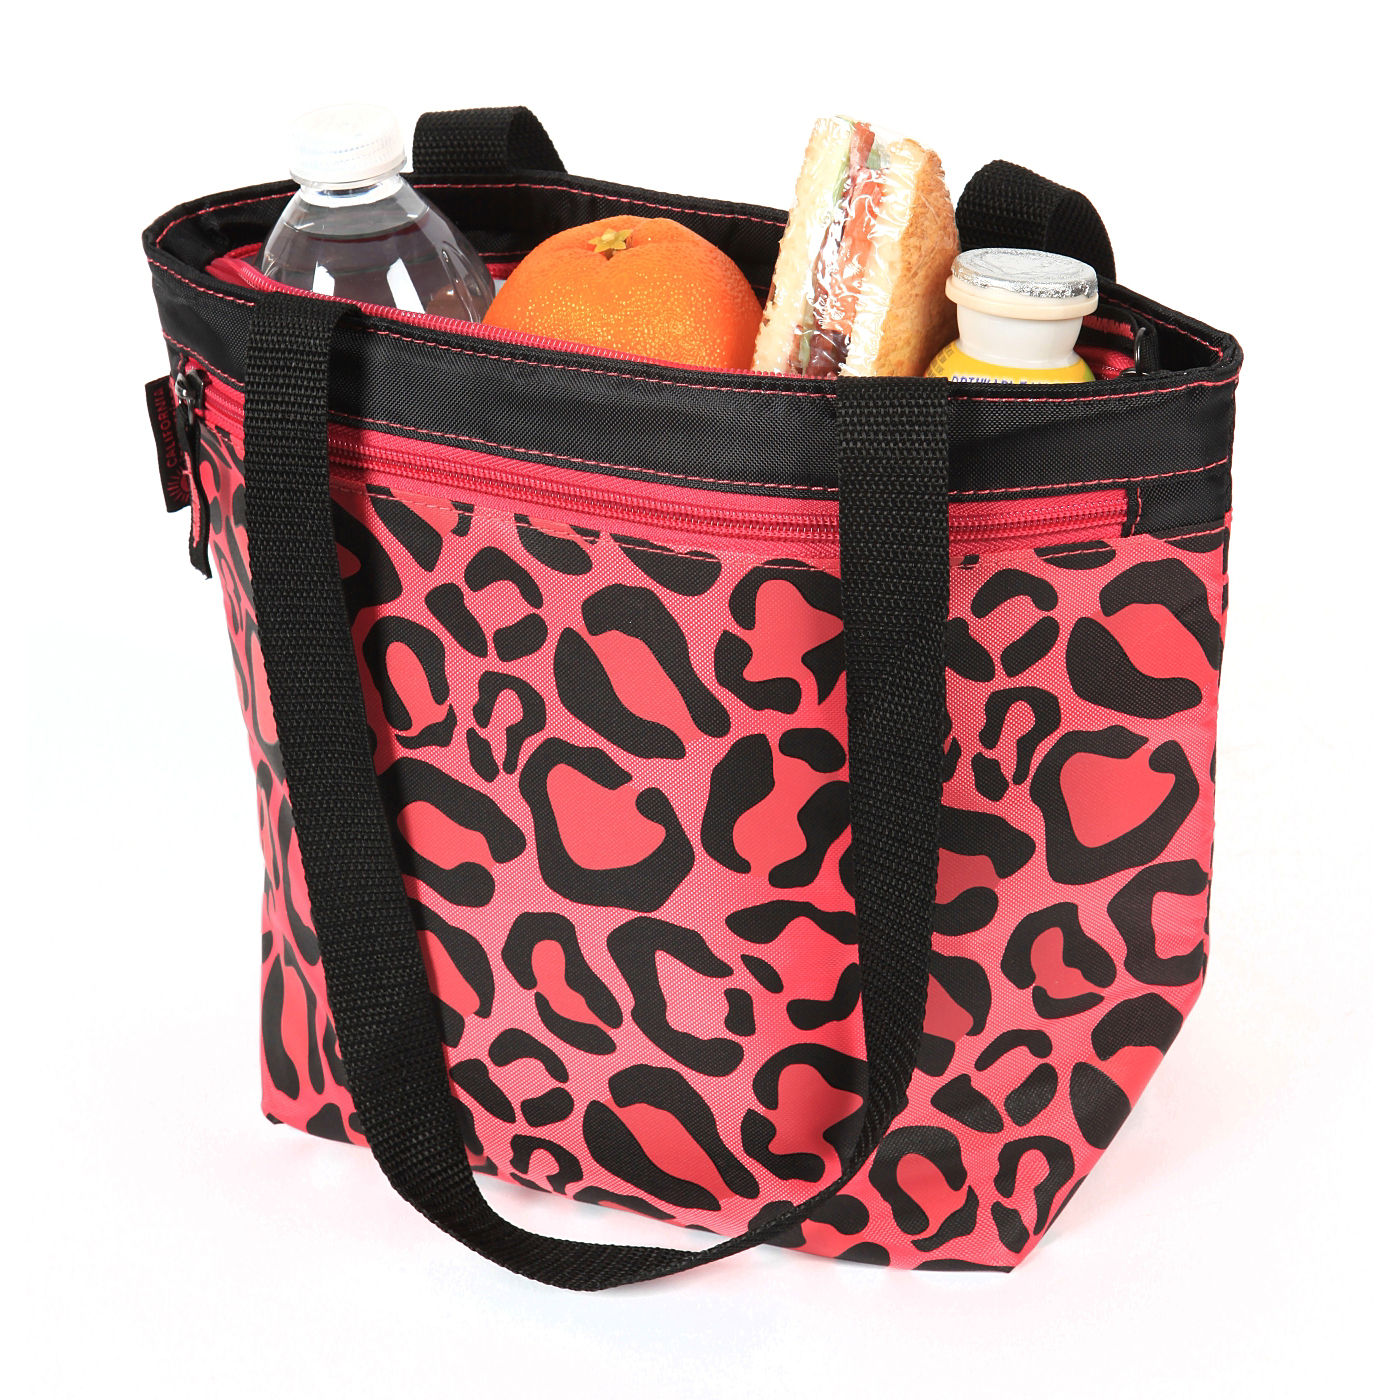 george home california innovations leopard lunch tote. Black Bedroom Furniture Sets. Home Design Ideas